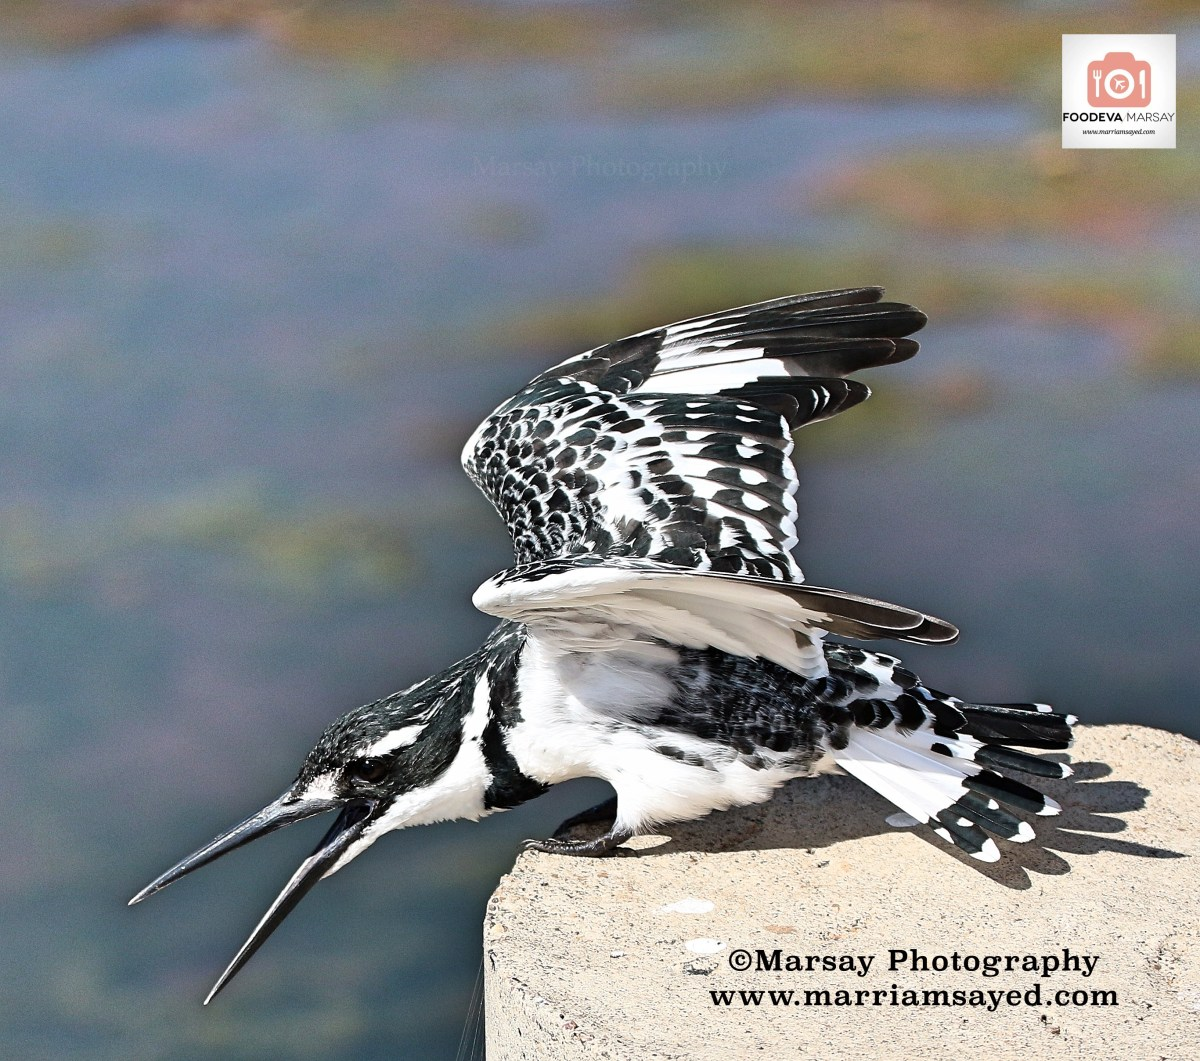 pied-kingfisher-wings-with-watermark-with-foodeva-sign.jpg?fit=1200%2C1061&ssl=1